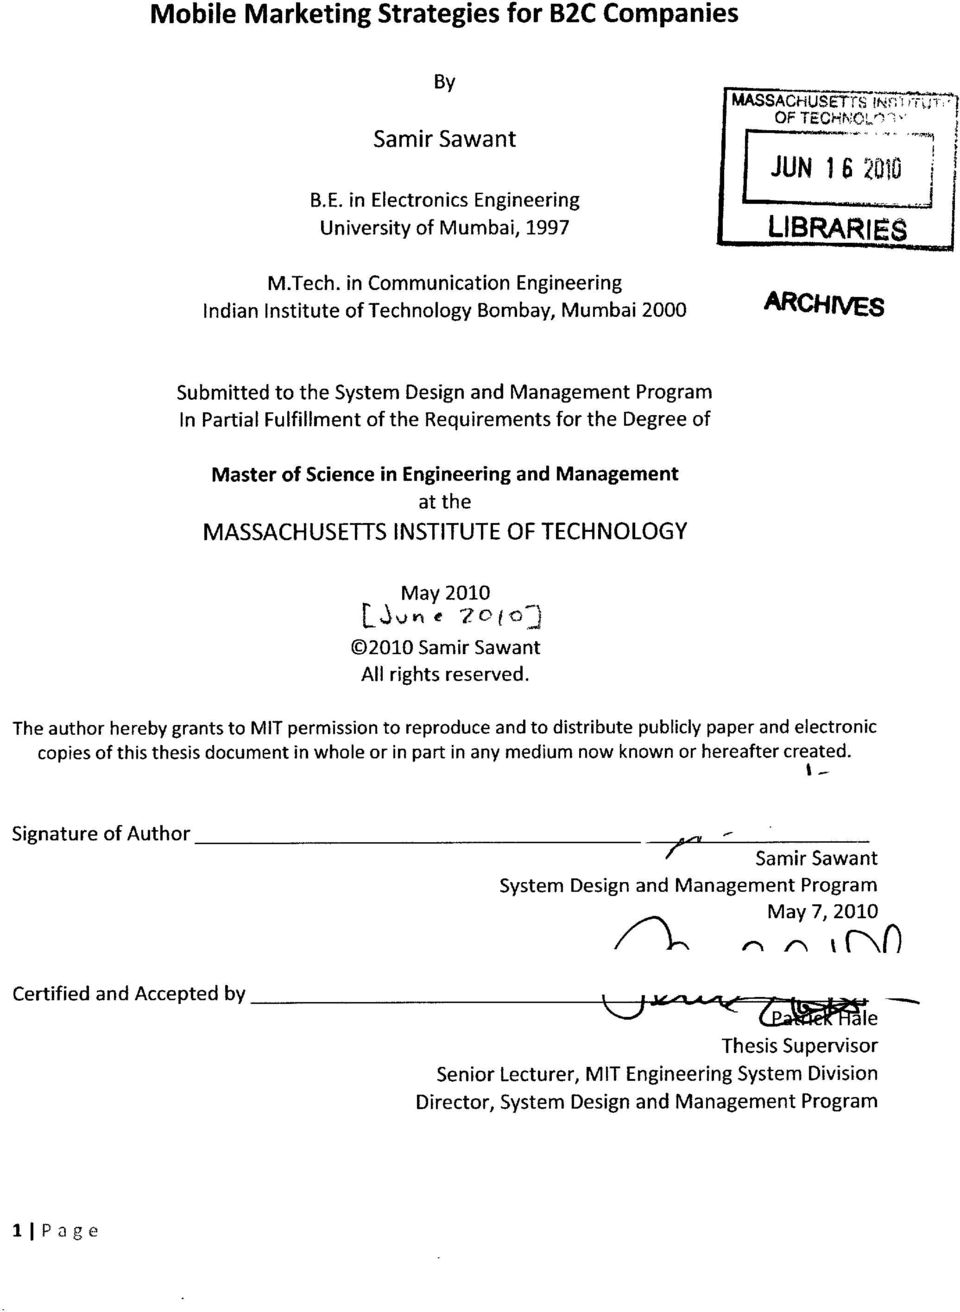 Partial Fulfillment of the Requirements for the Degree of Master of Science in Engineering and Management at the MASSACHUSETTS INSTITUTE OF TECHNOLOGY May 2010 02010 Samir Sawant All rights reserved.